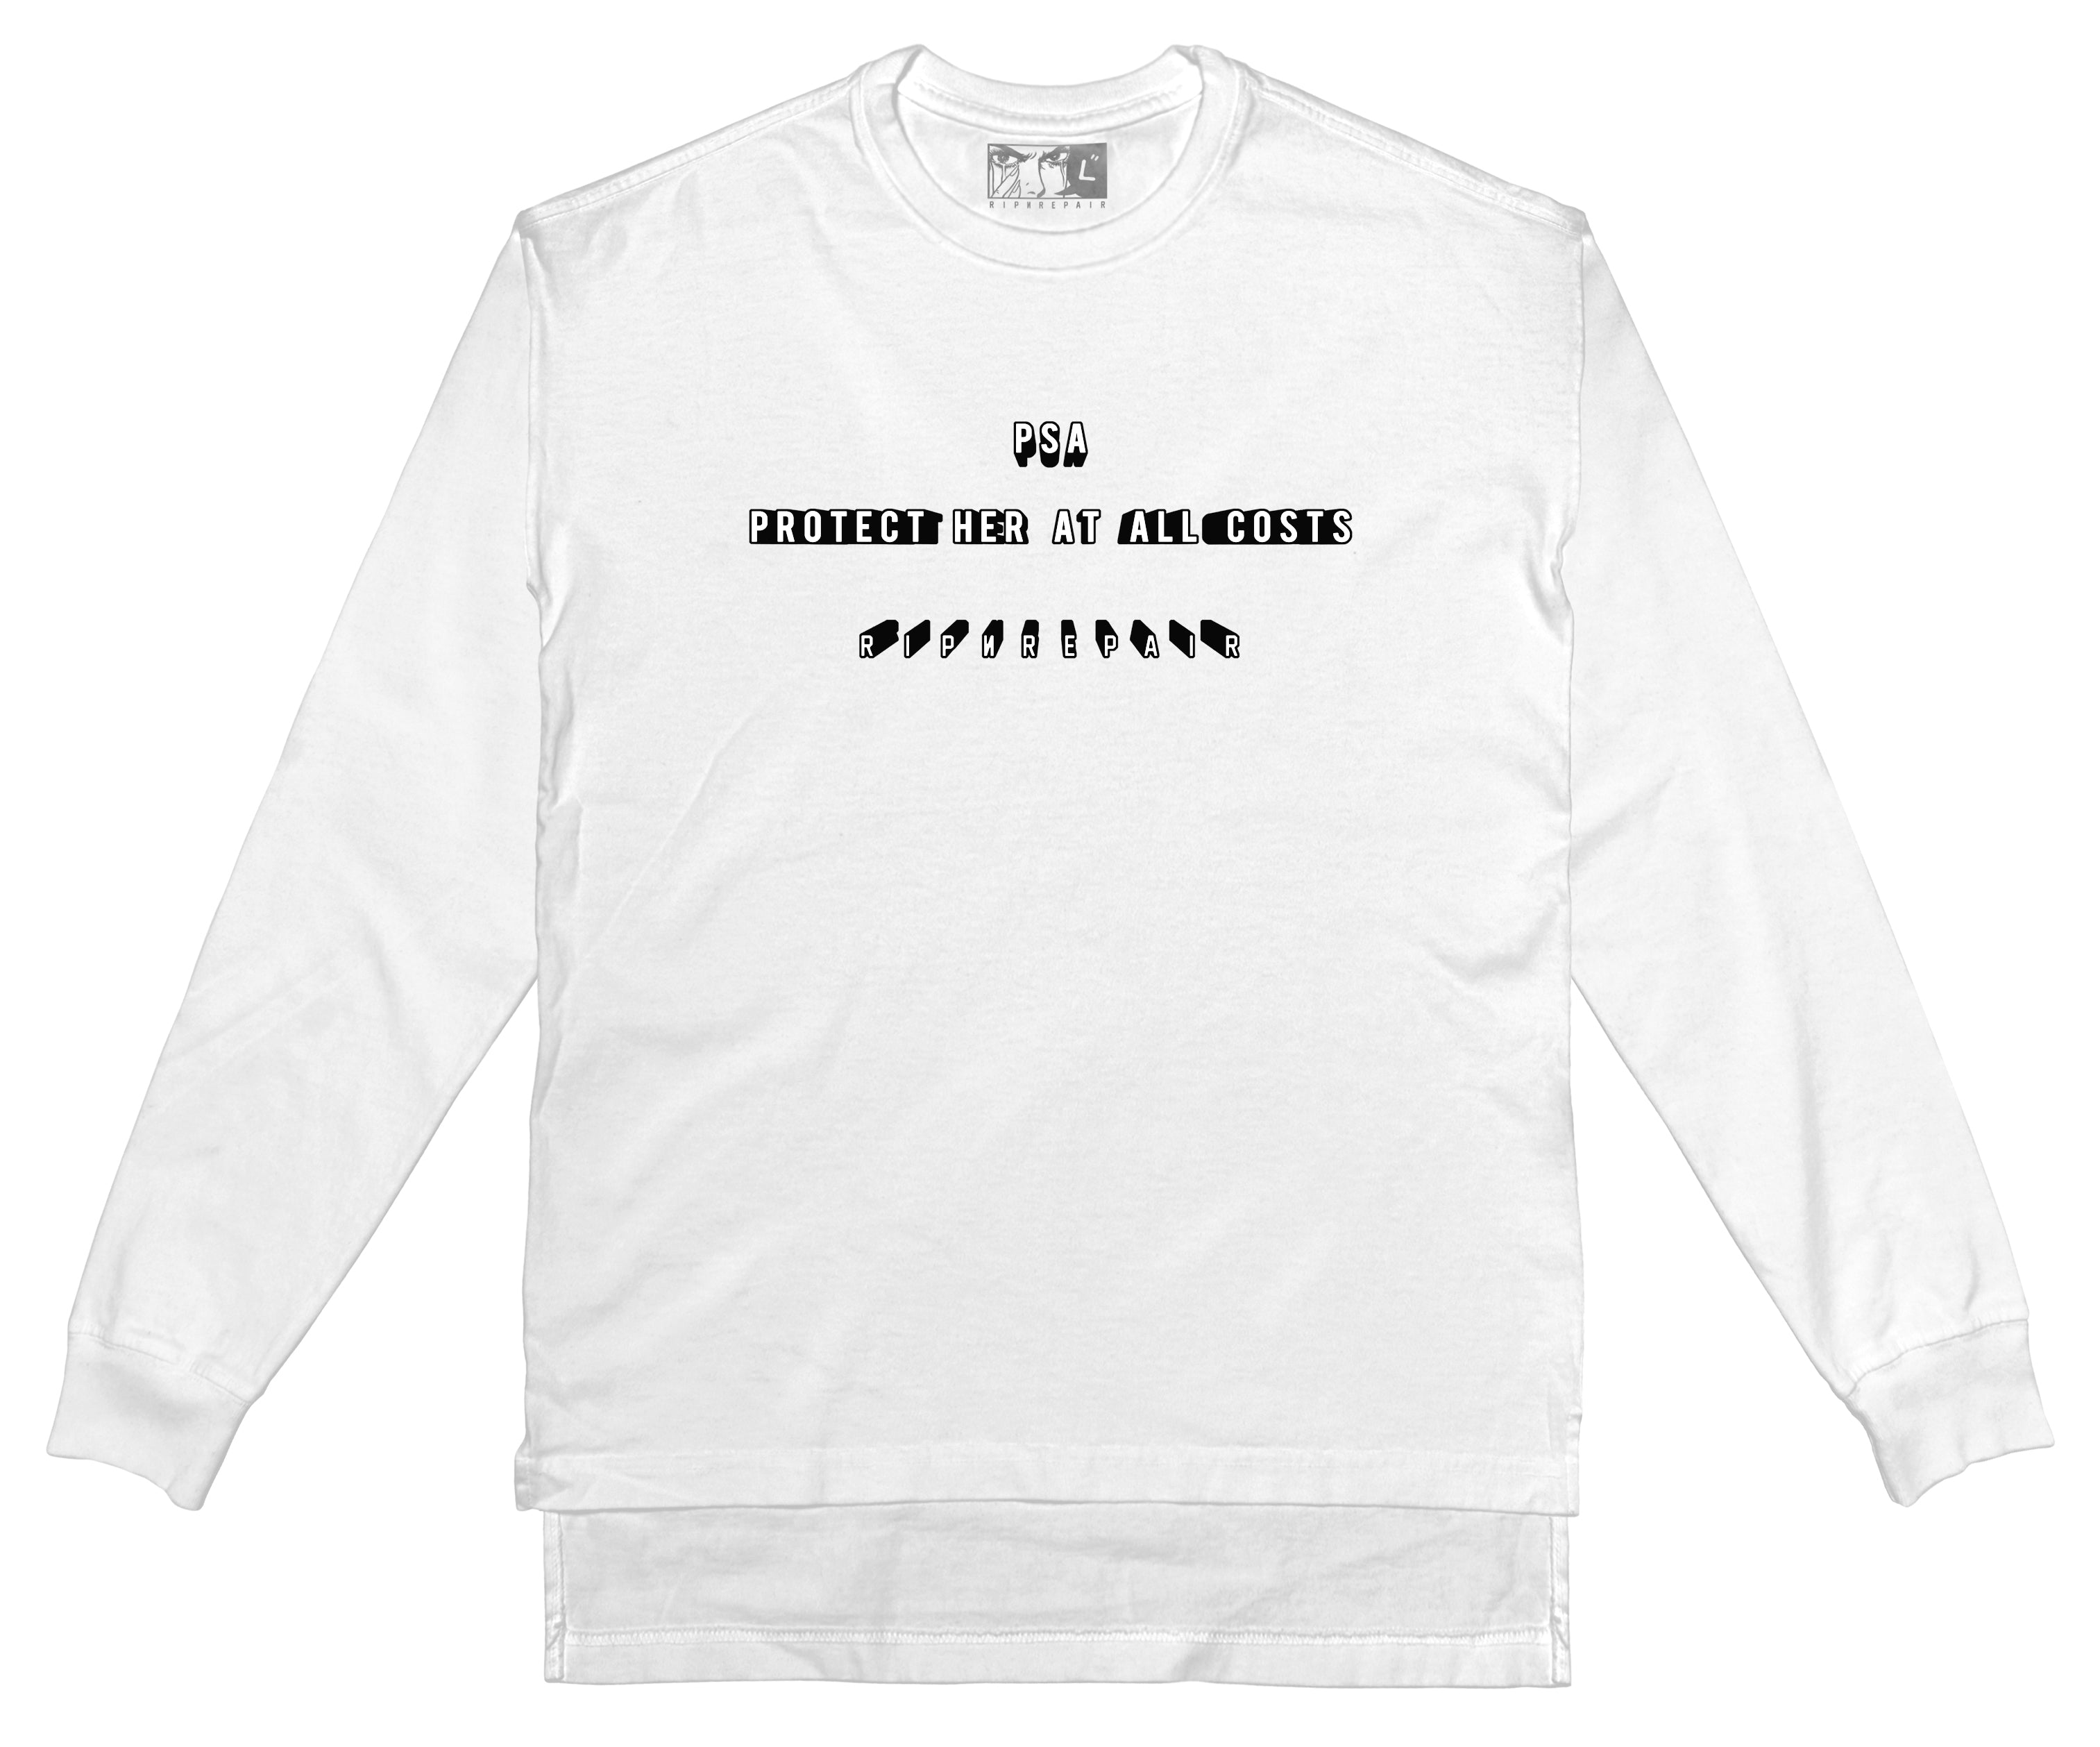 PSA - Long Sleeve (White) - RIPNRPR